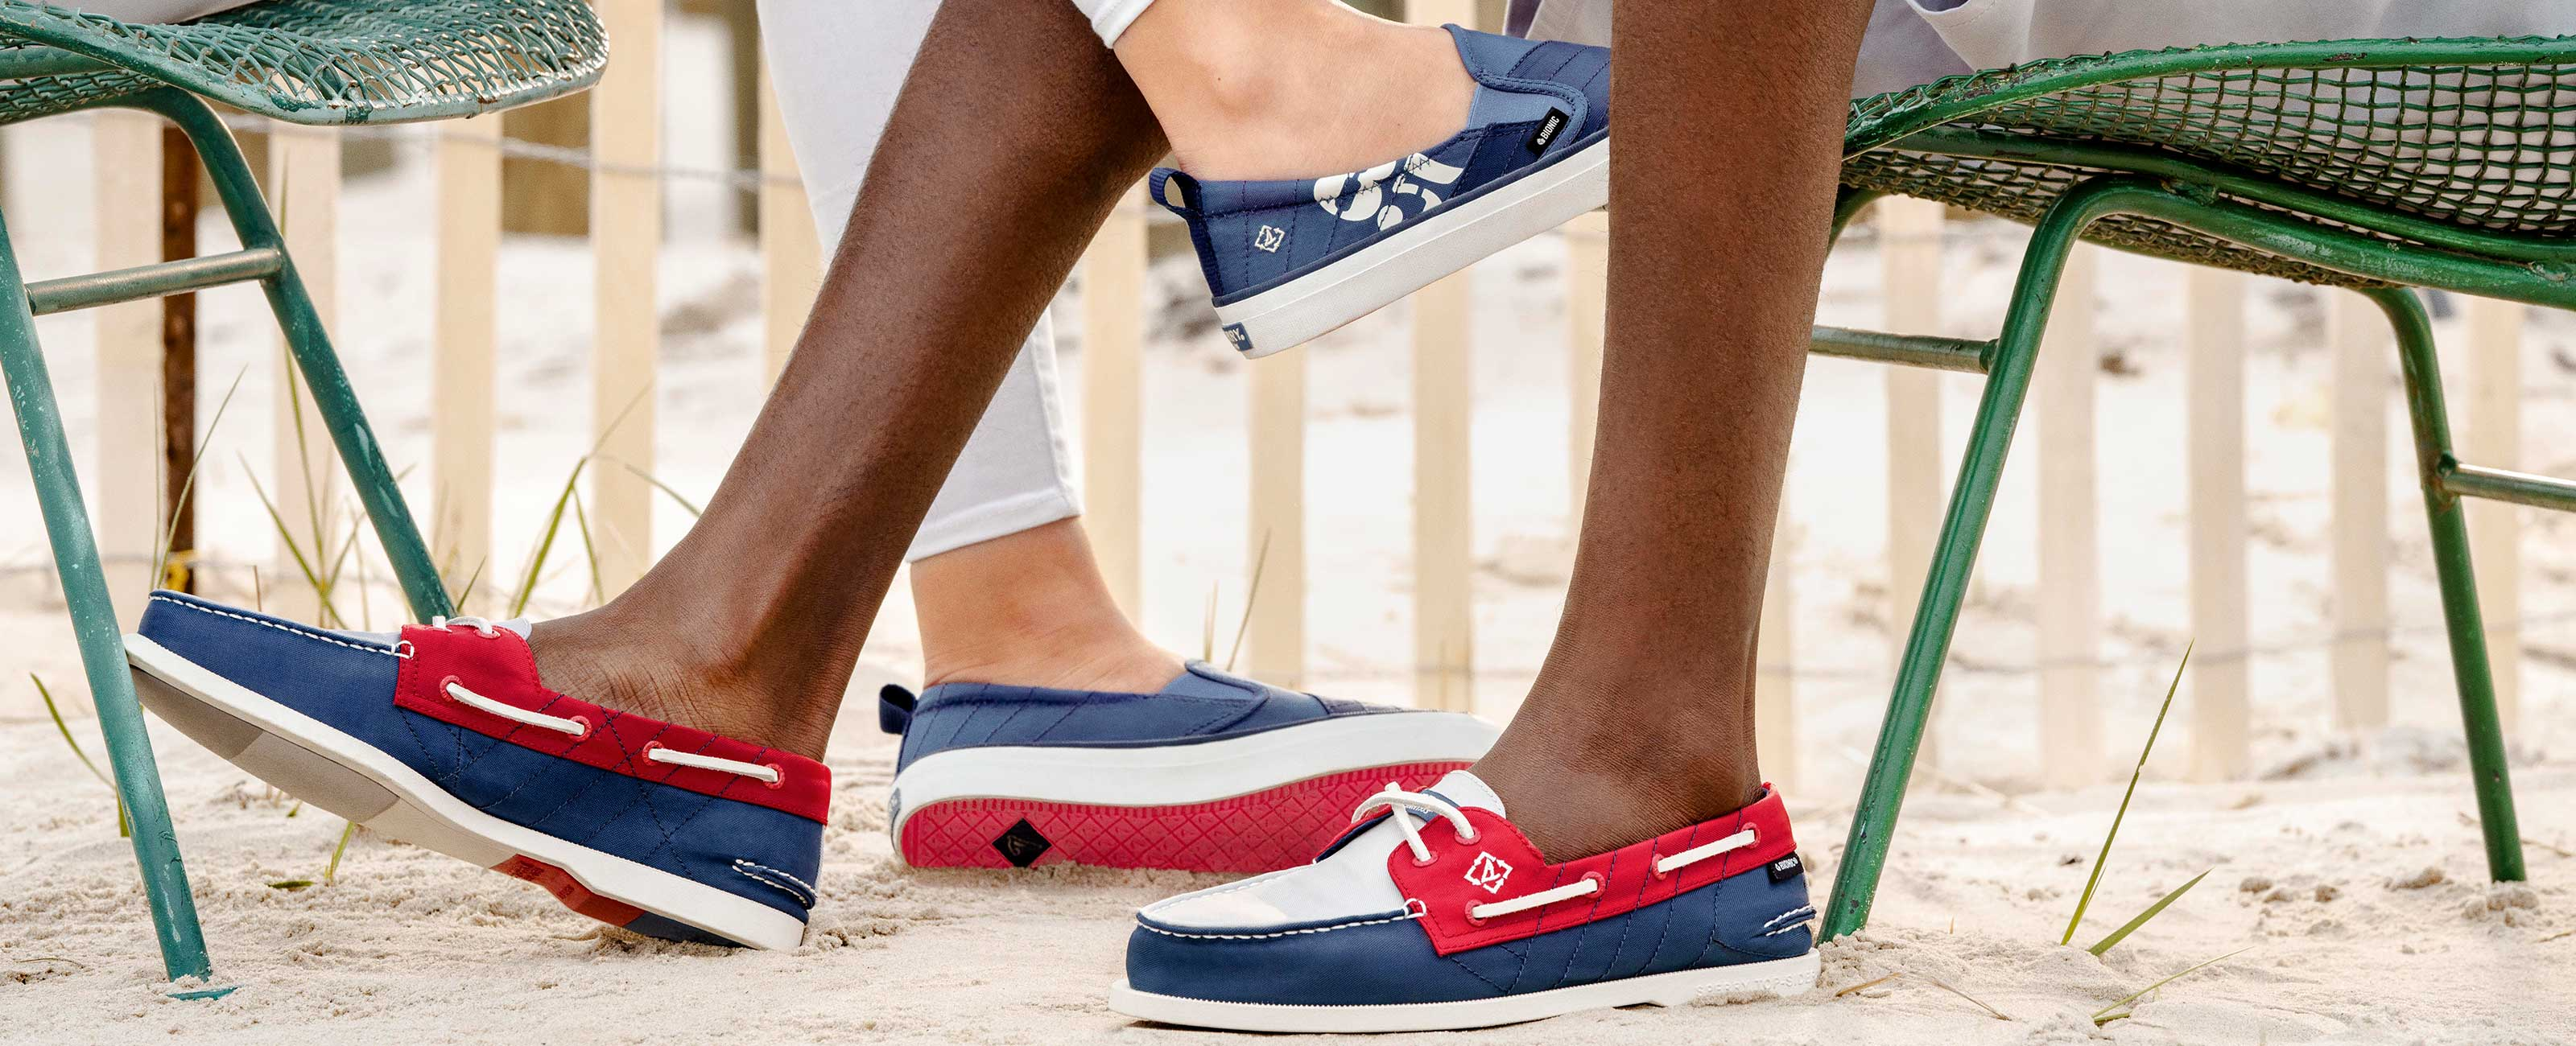 Close up of two pairs of feet wearing Bionic boat shoes.